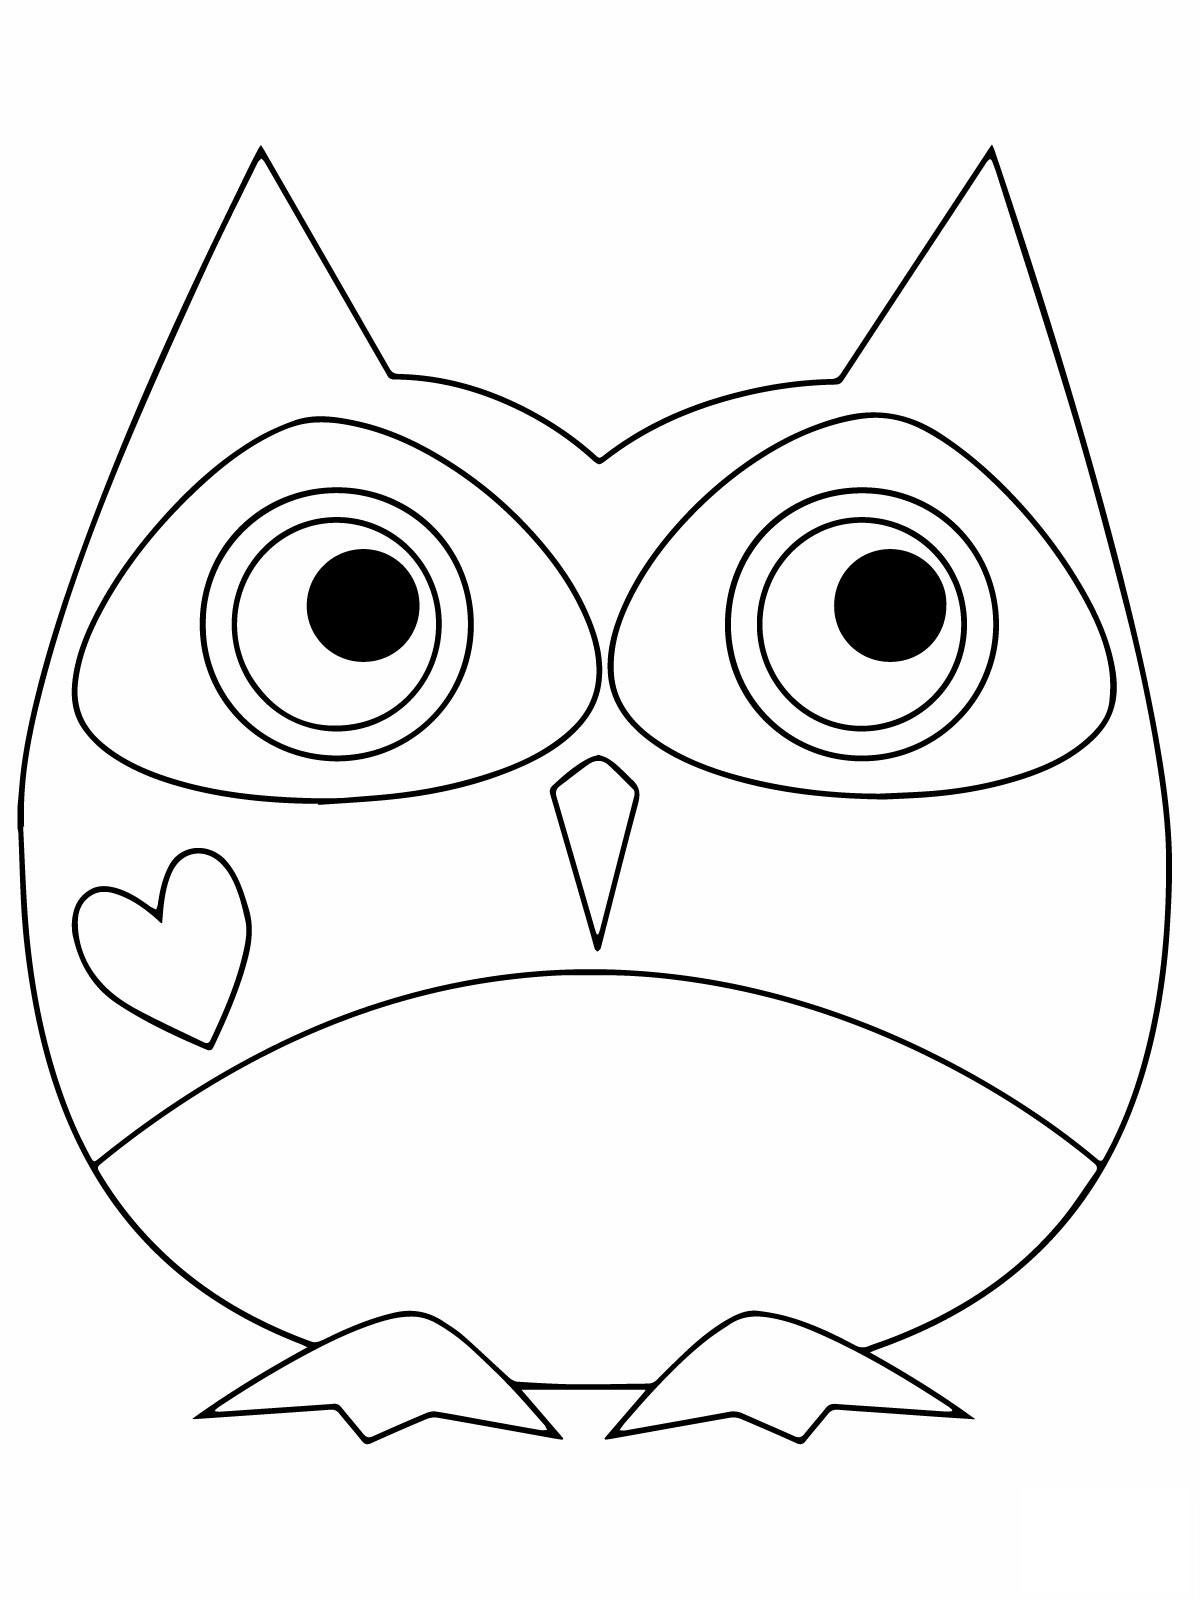 Owl Valentine's Day Coloring Pages Free Download